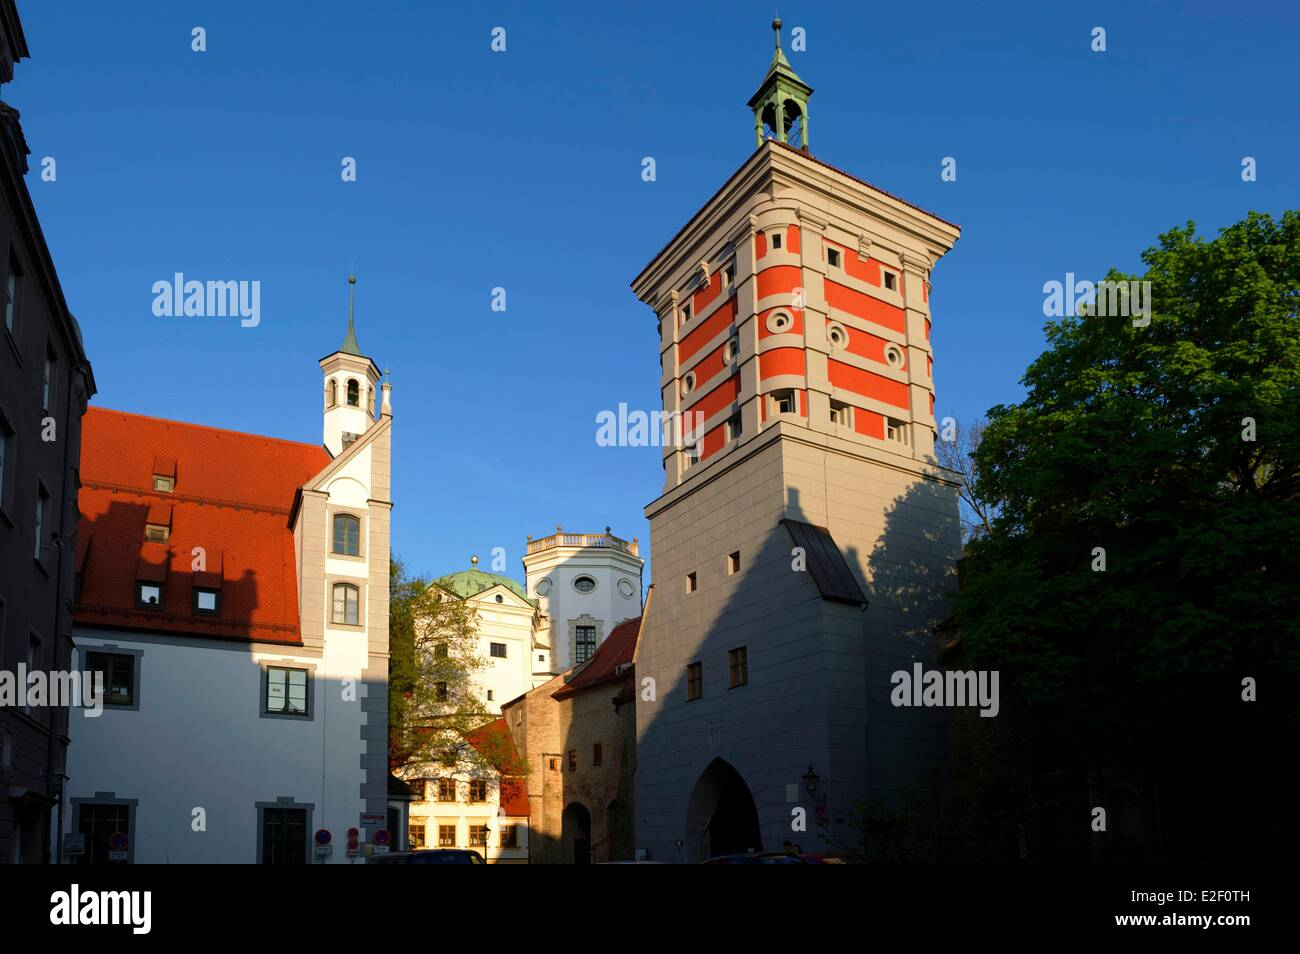 Germany, Bavaria, Augsburg, Rotes Tor (Red gate) - Stock Image